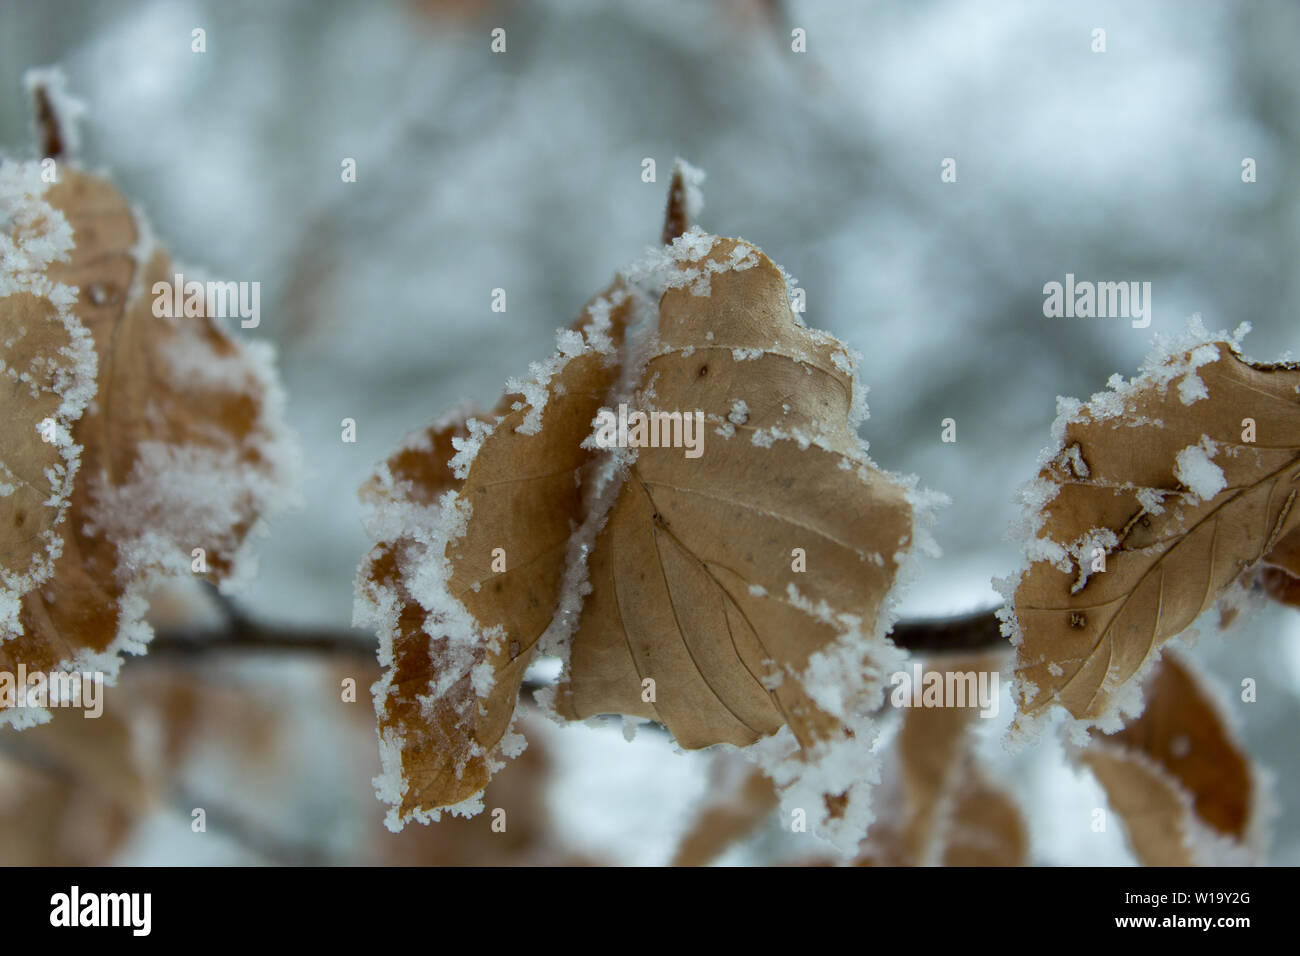 Twiggy leaf in winter with snow Stock Photo